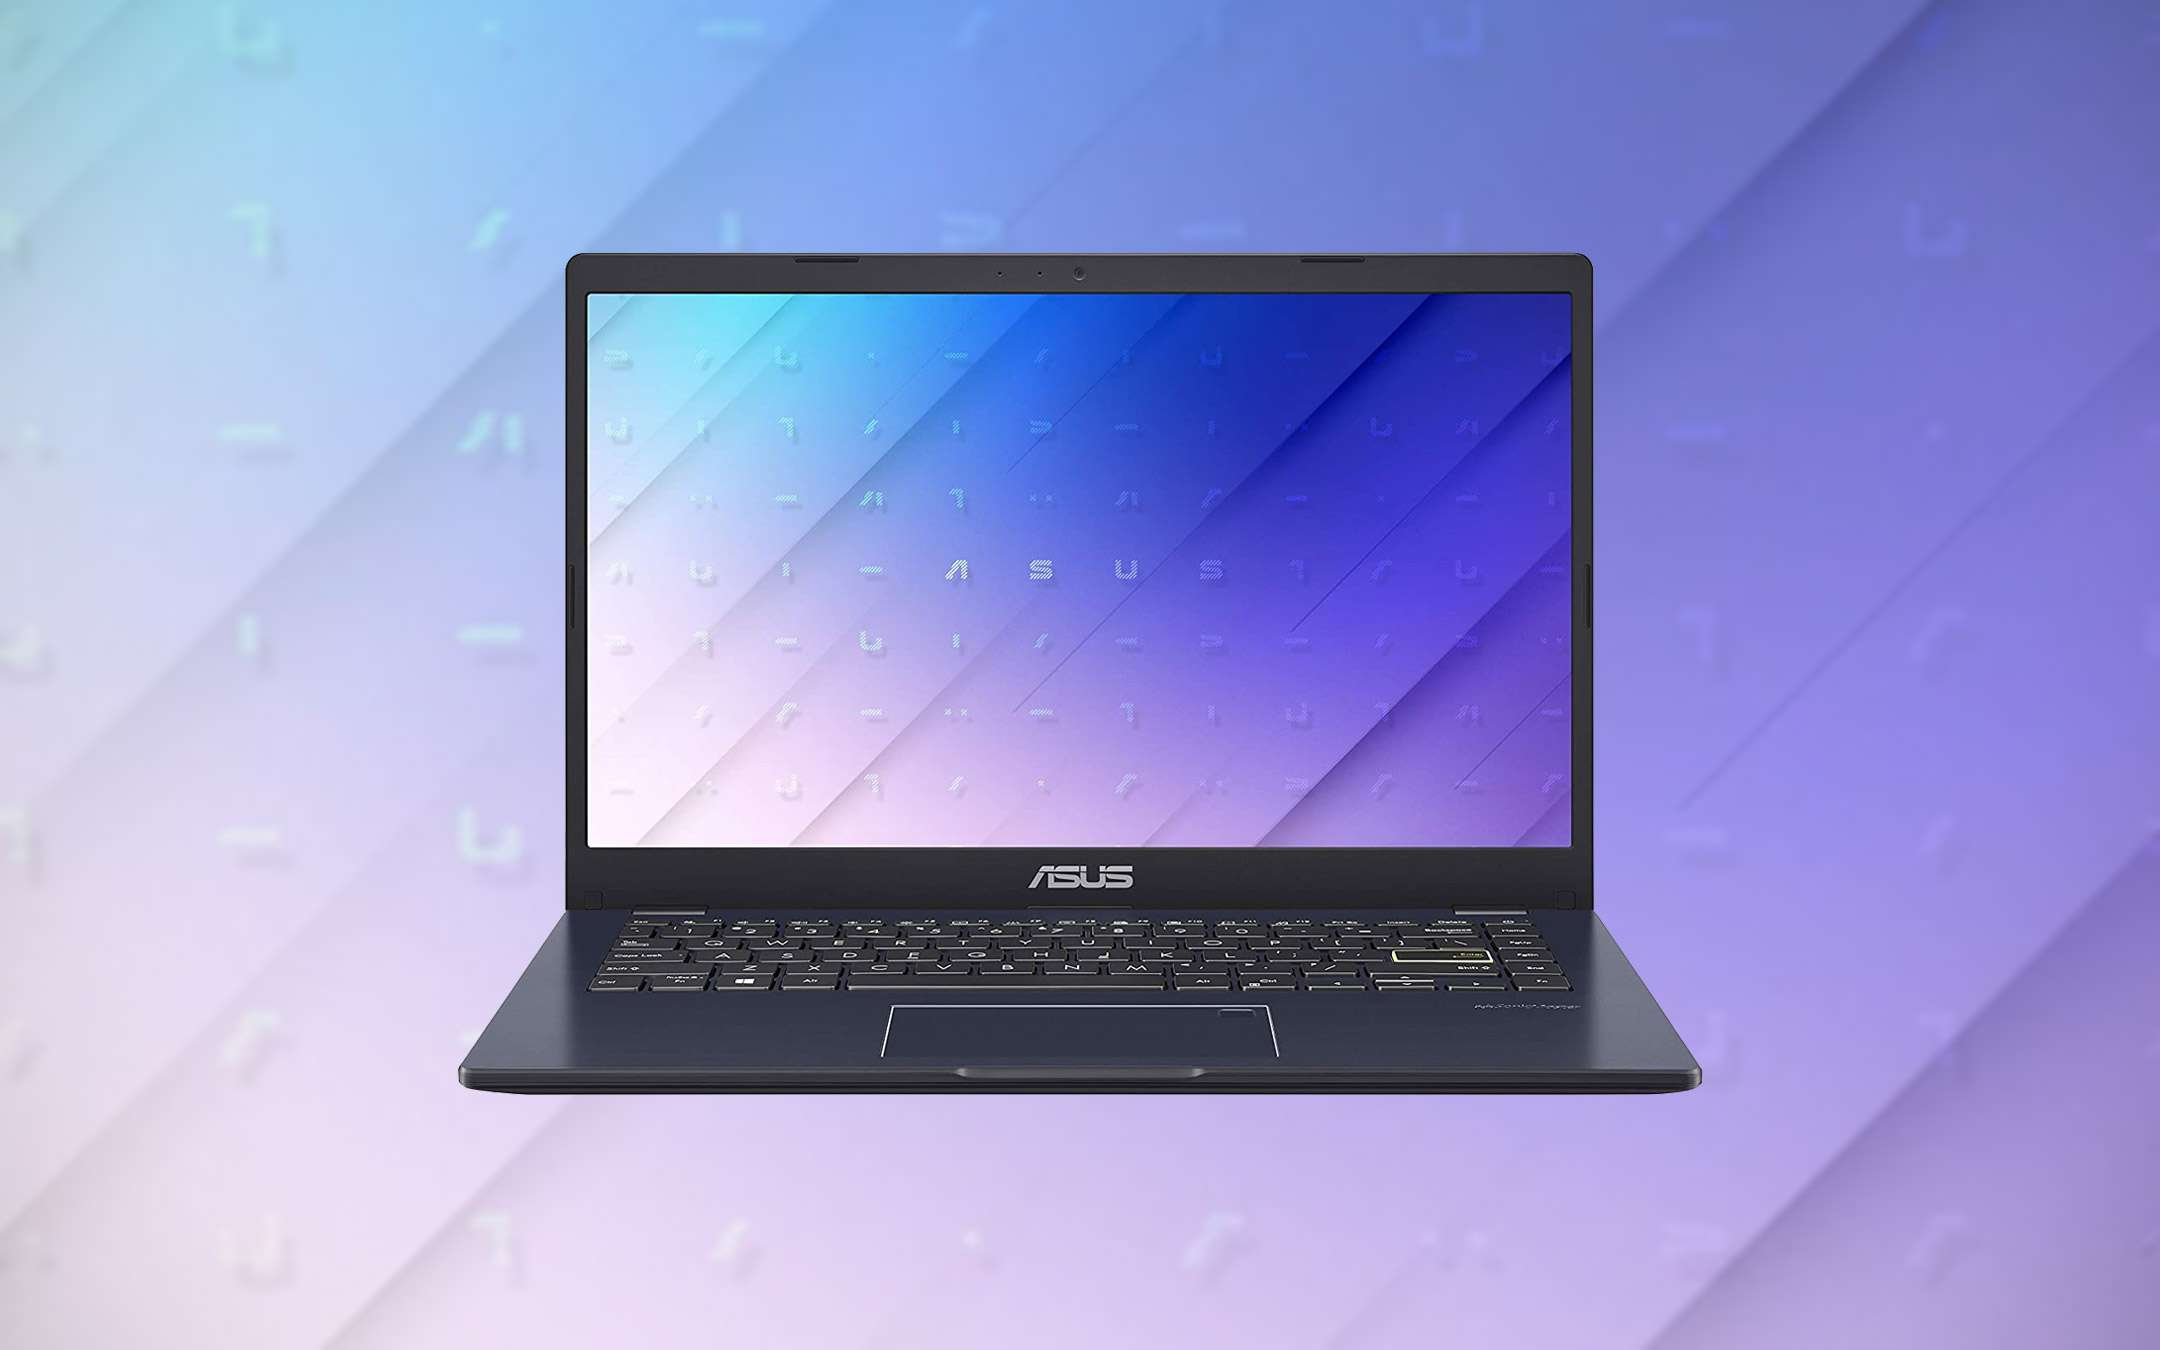 The ideal ASUS laptop for distance learning